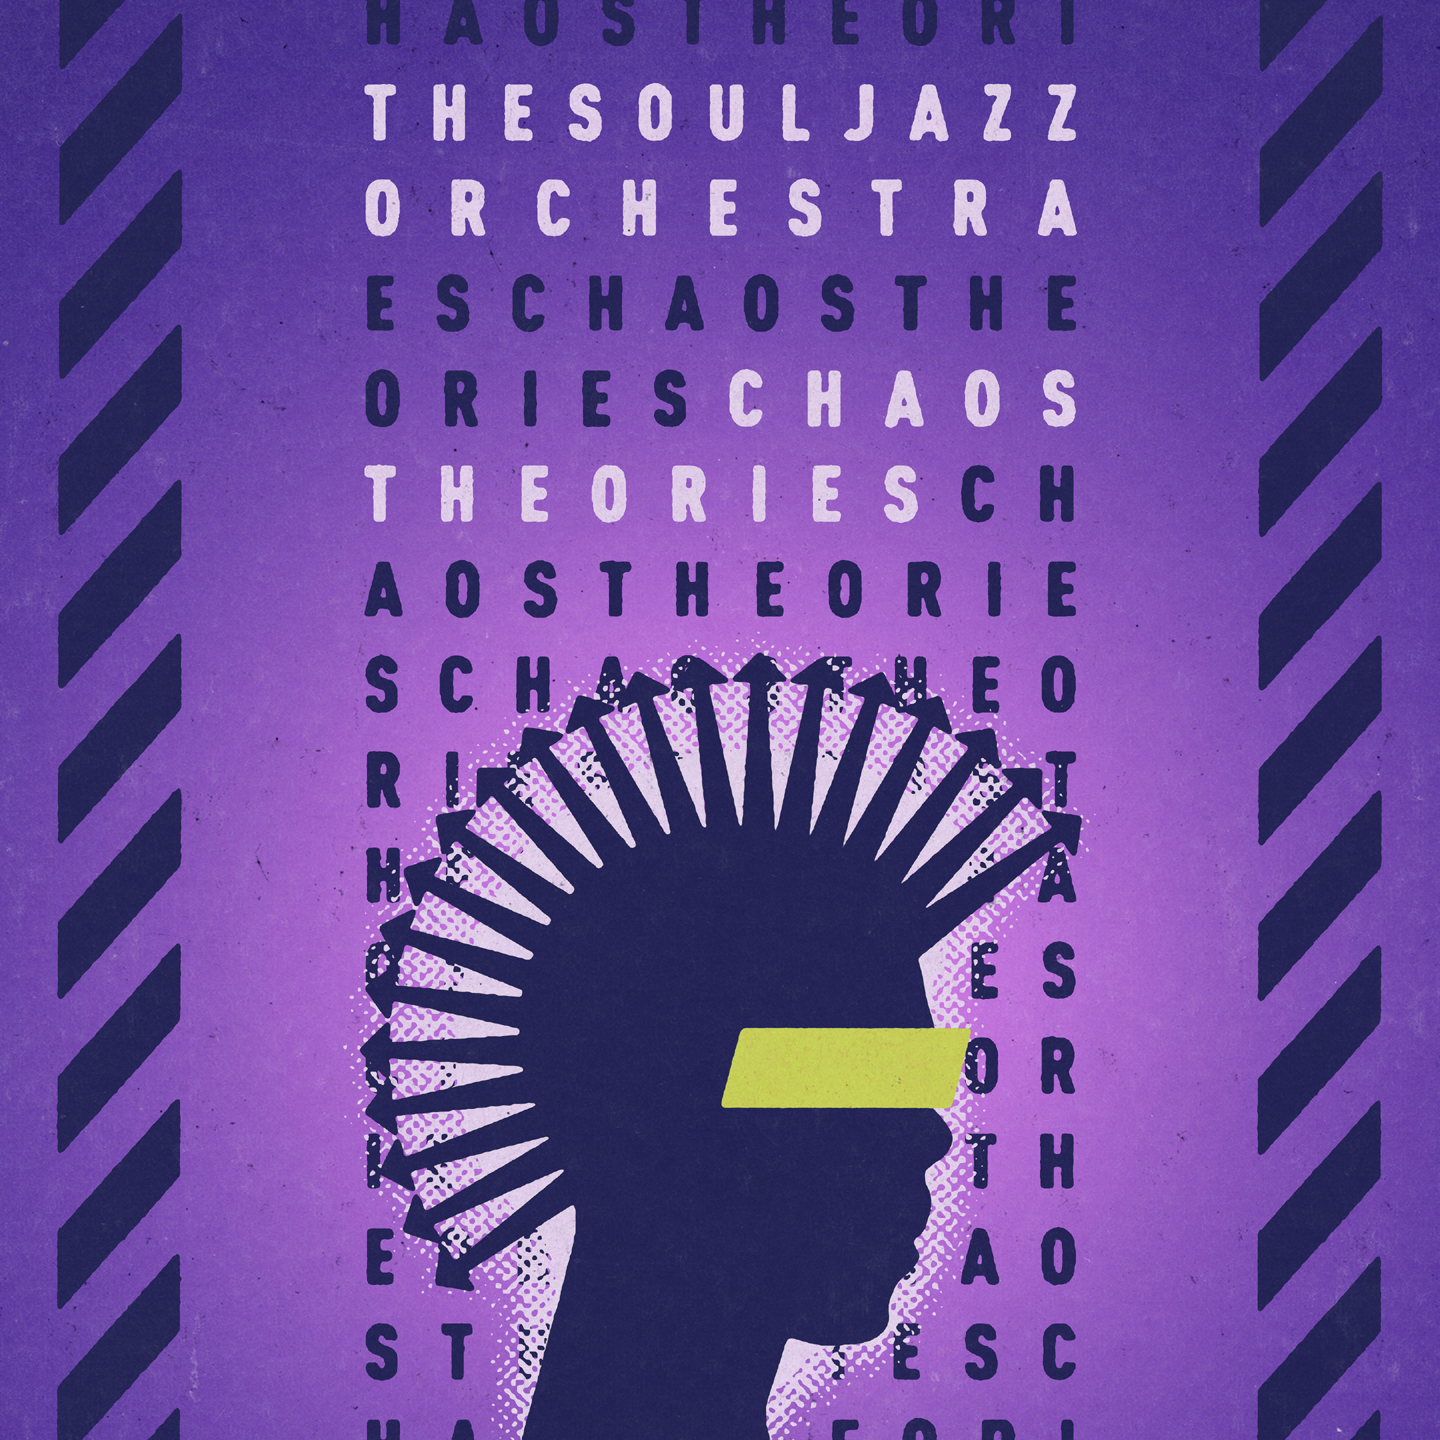 THE SOULJAZZ ORCHESTRA - CHAOS THEORIES album artwork